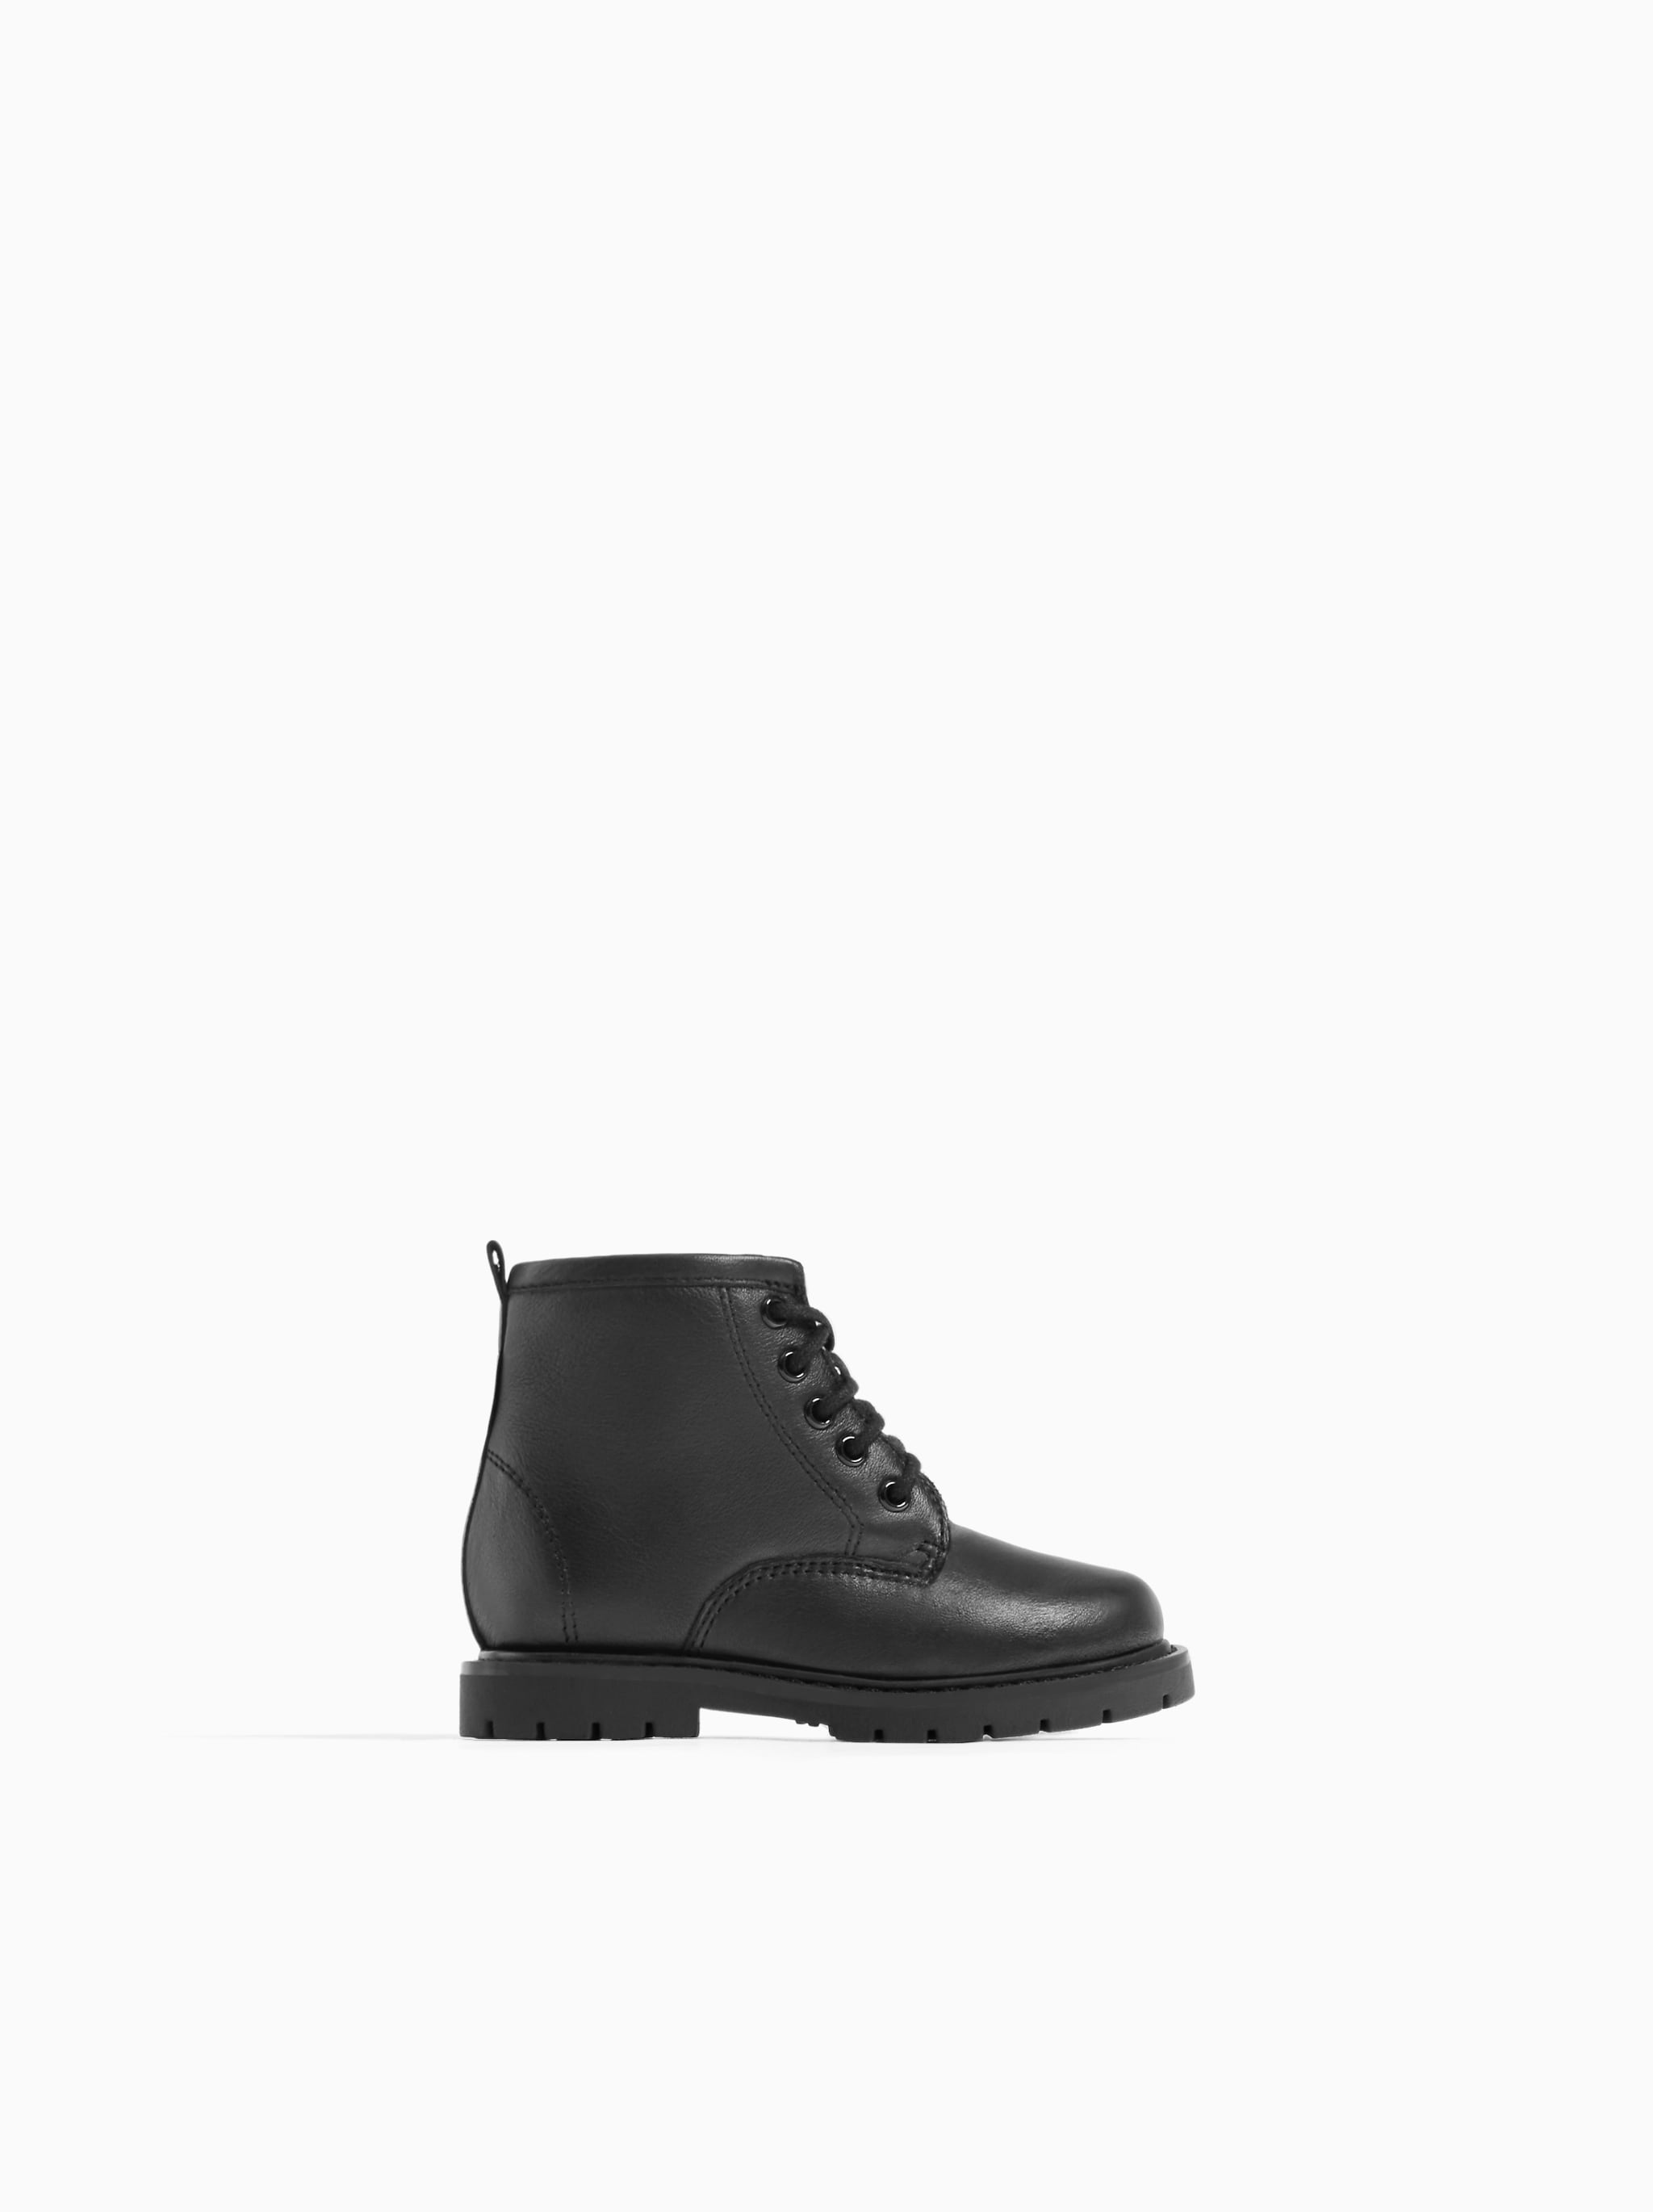 Zara LACED LEATHER BOOTS